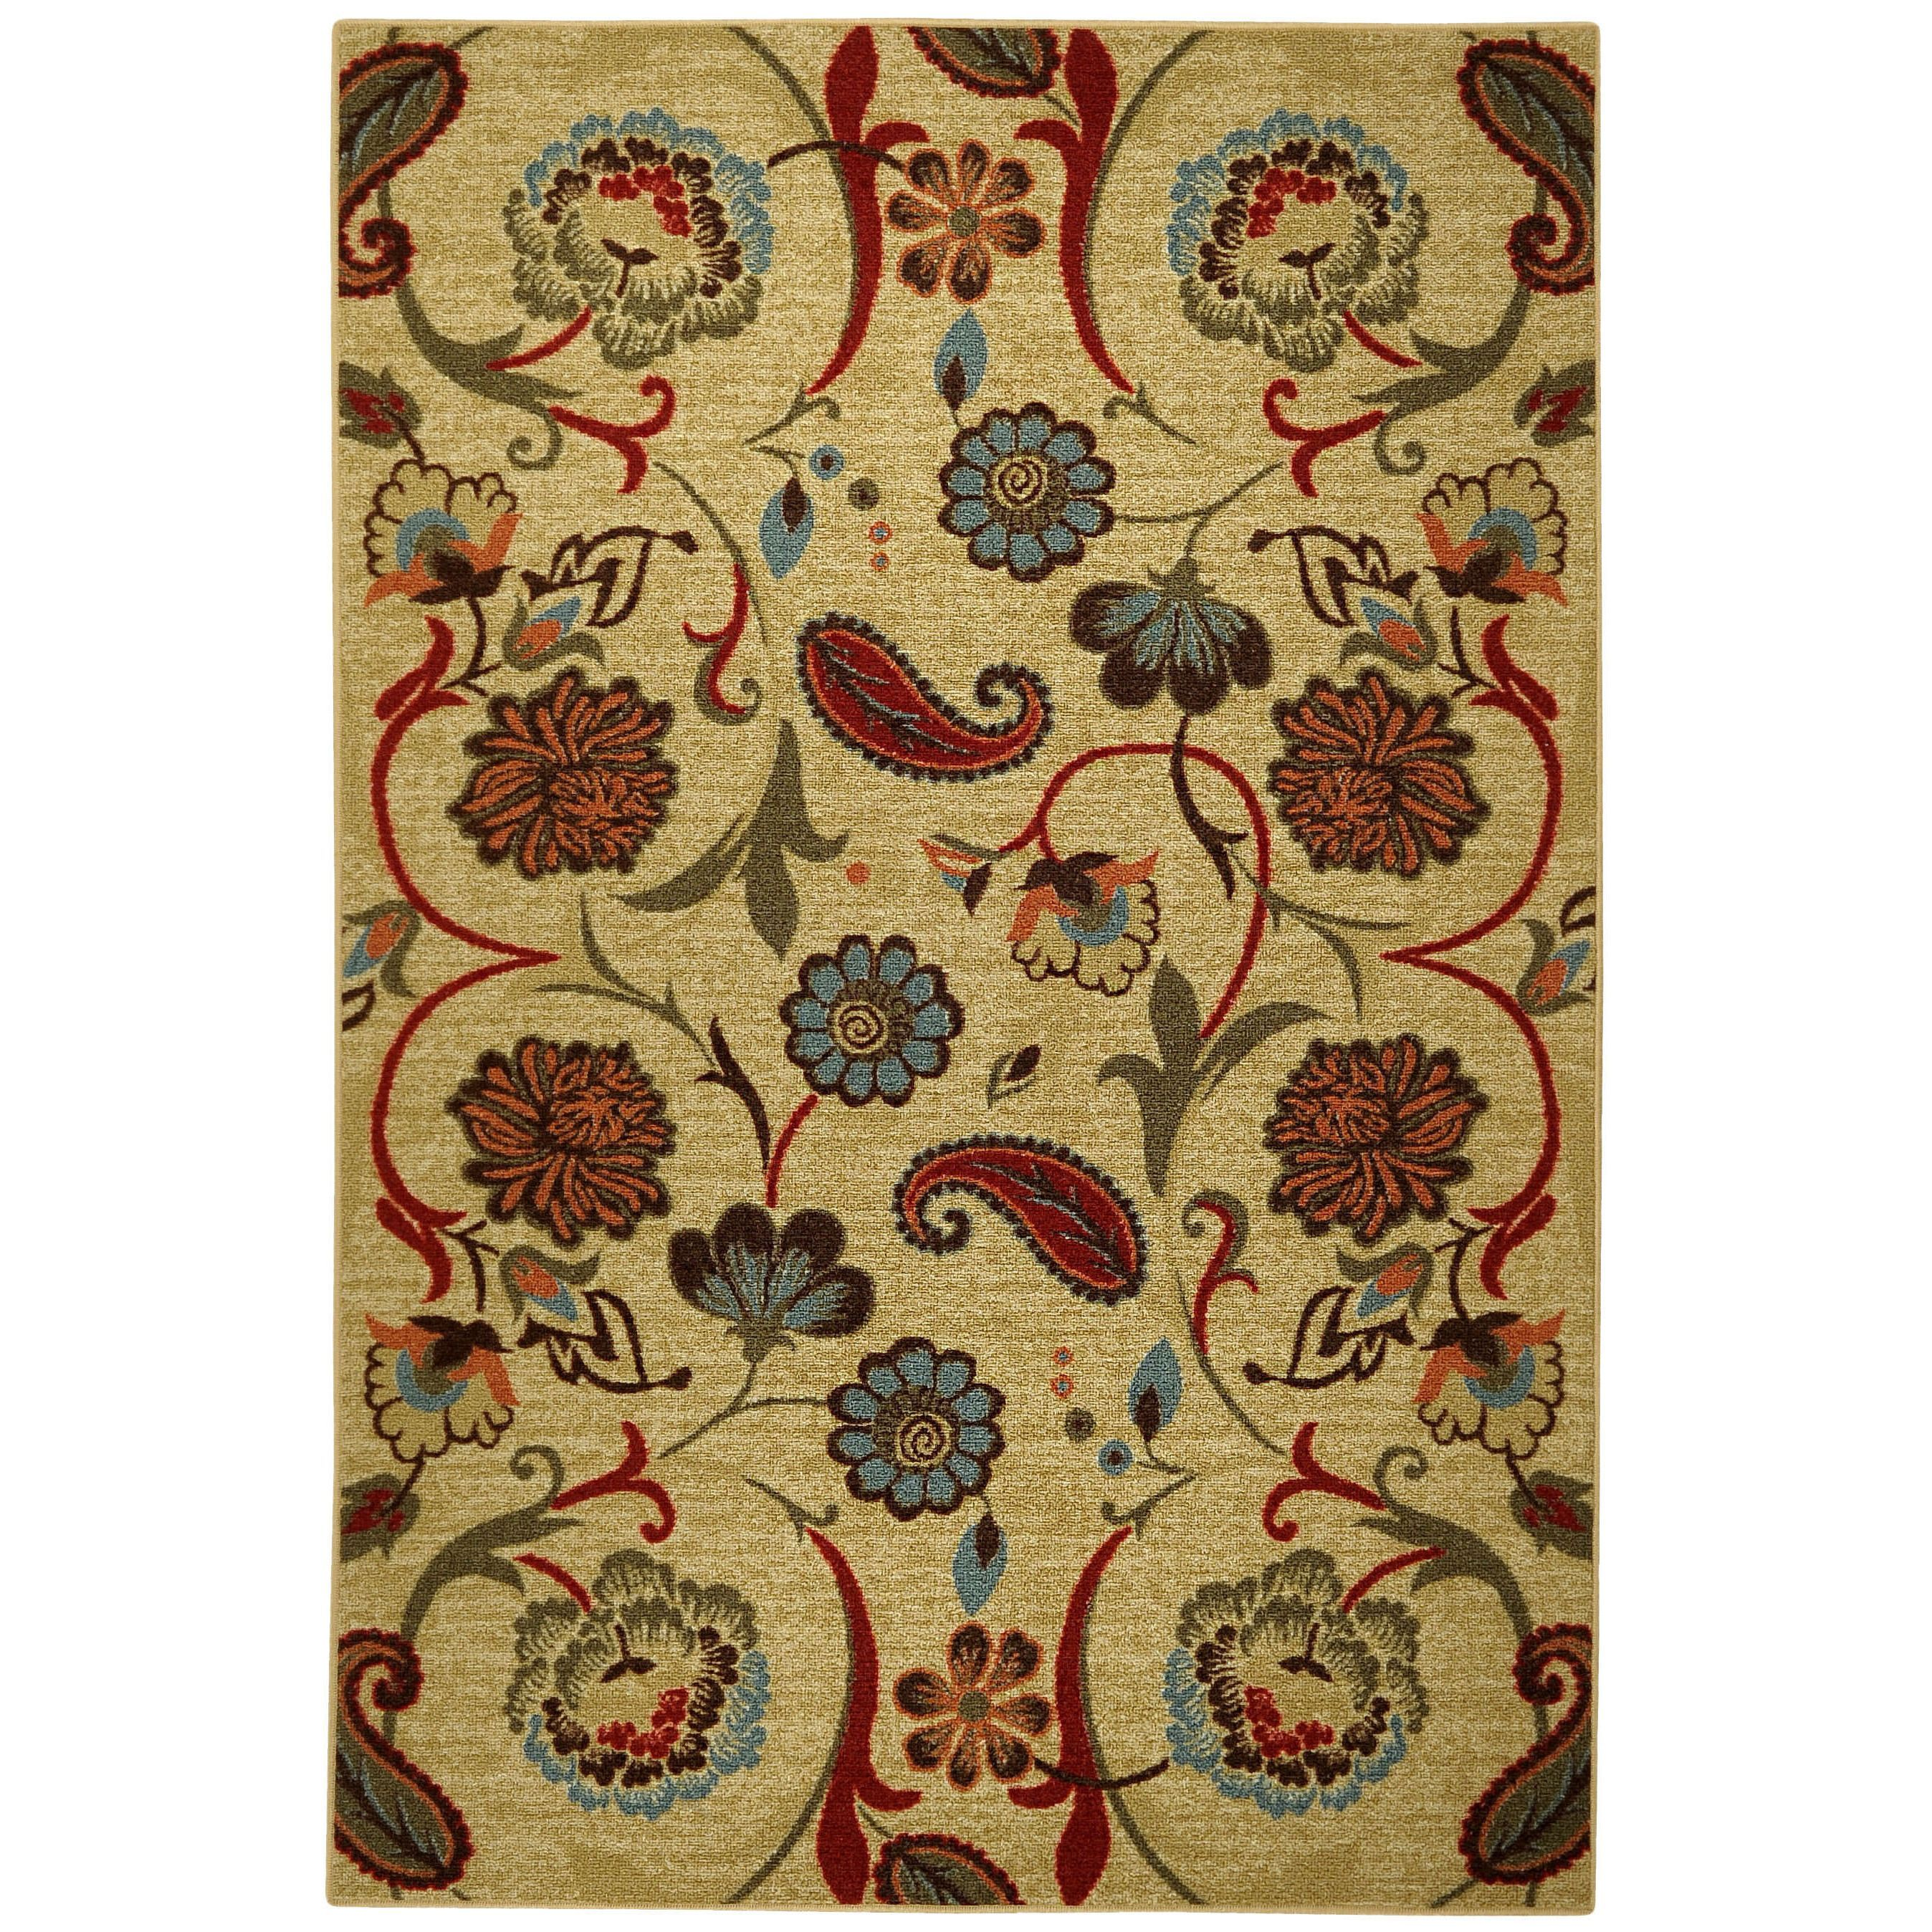 Rubber Back Beige Multicolored Floral Non Skid Area Rug 5 X 6 6